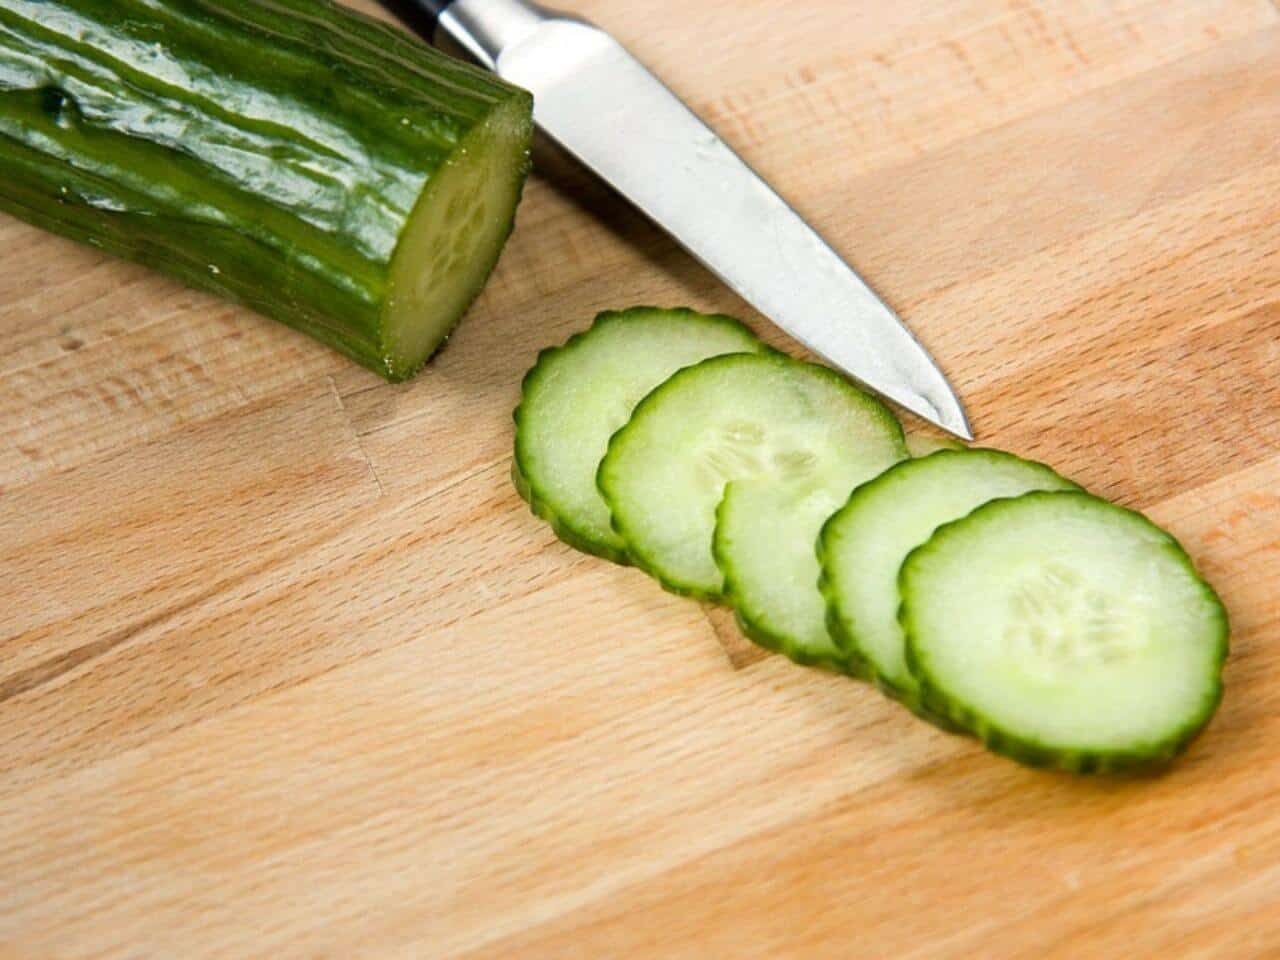 Sliced English Cucumber sliced on a wooden cutting board